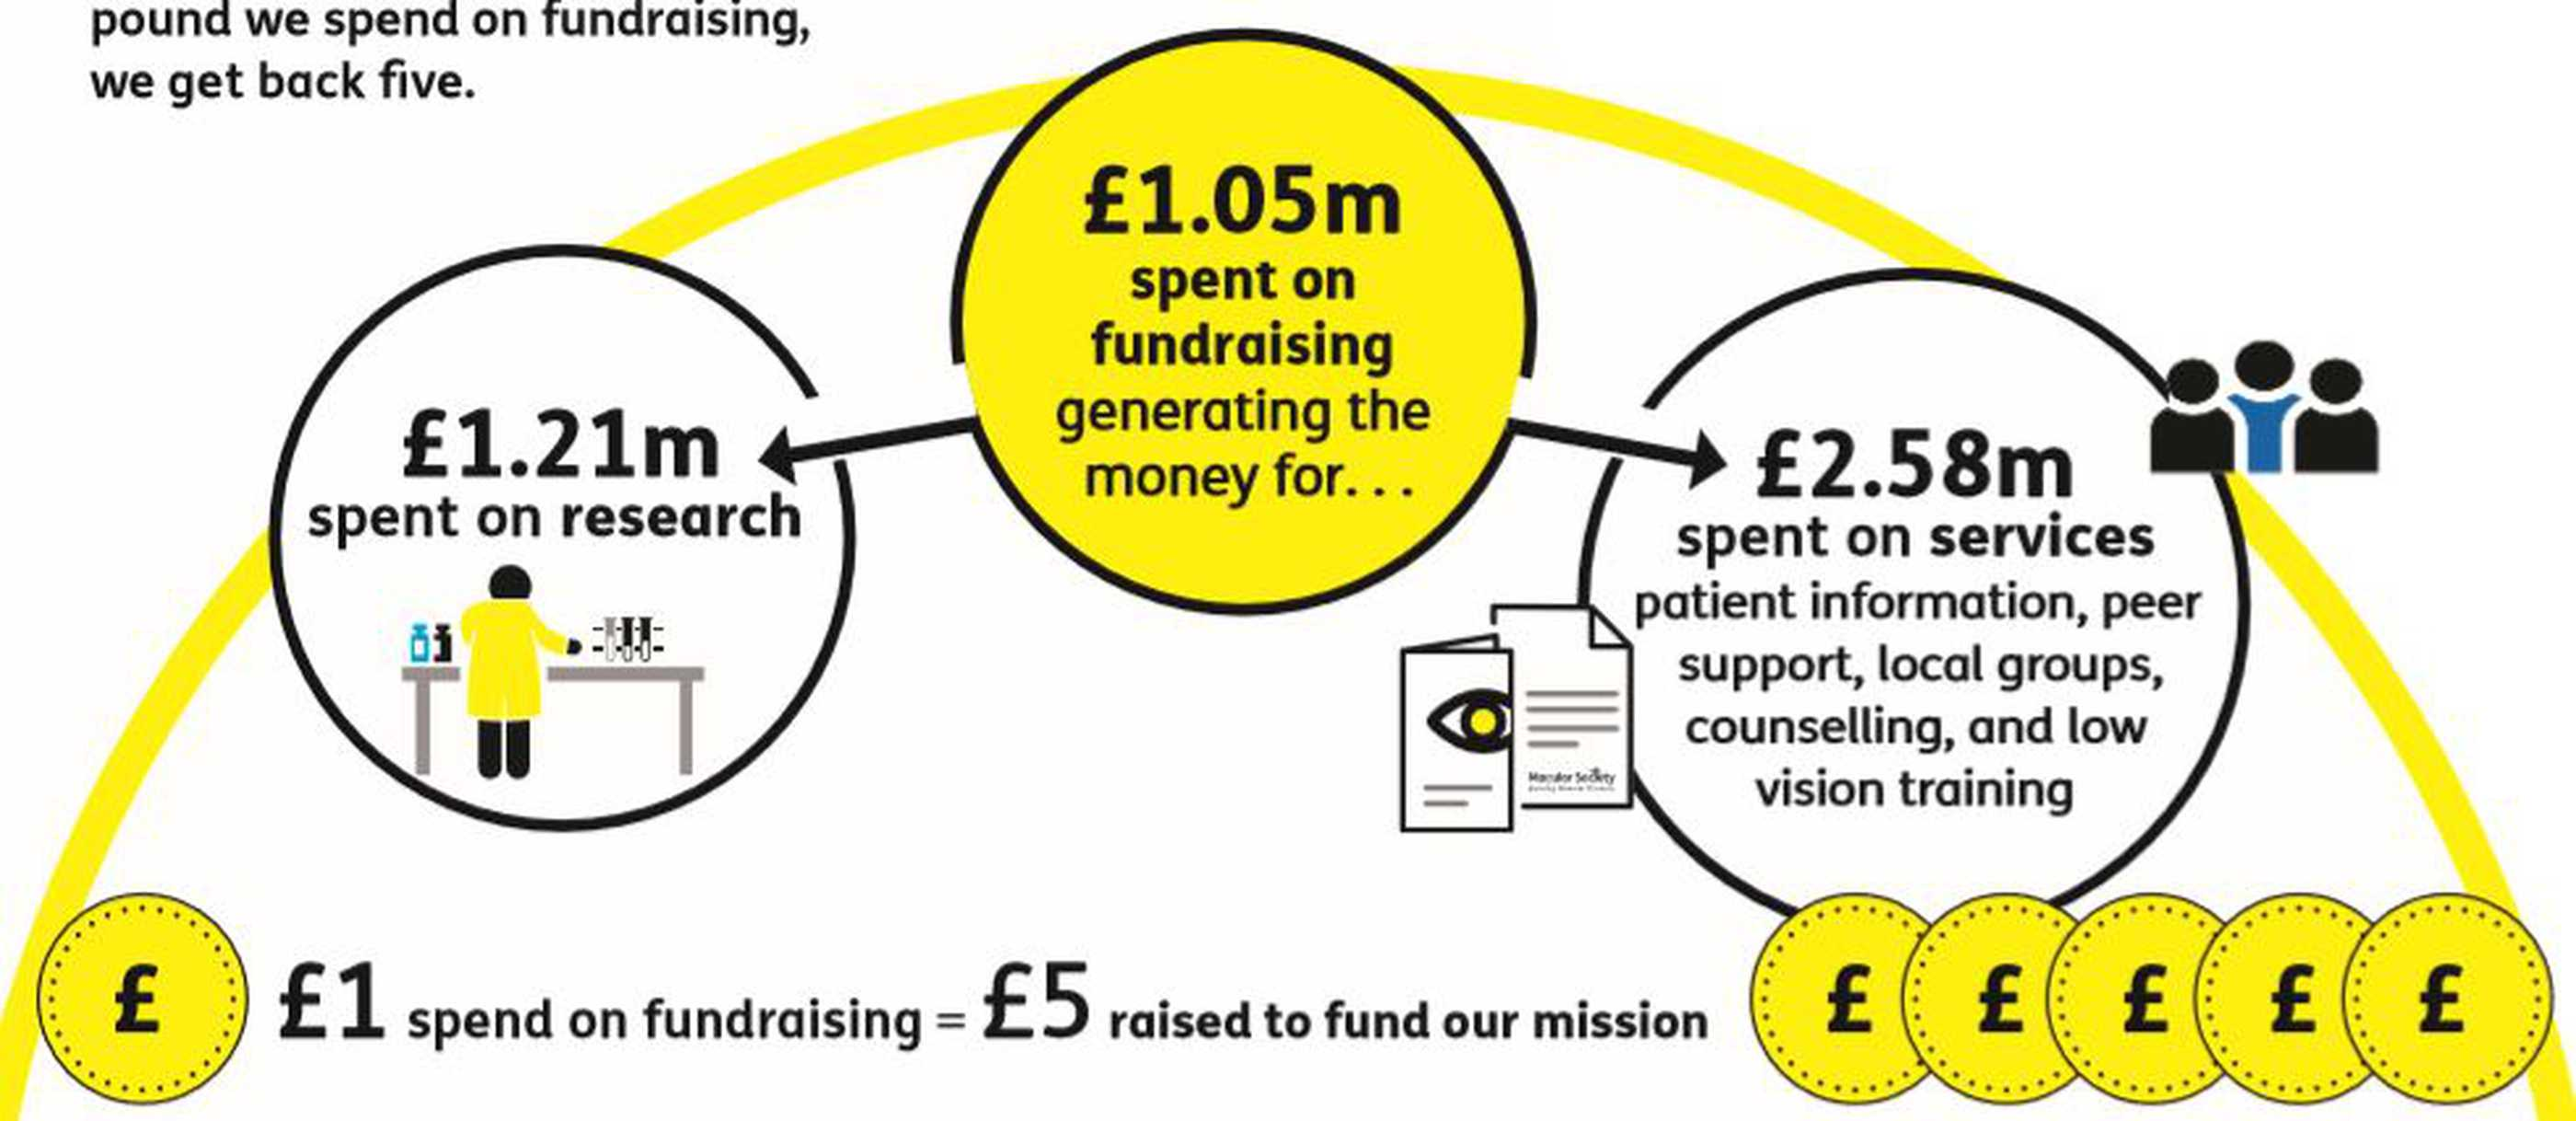 Infographic showing how each Pound we spend on fundraising generates five to fund macular disease research and support services